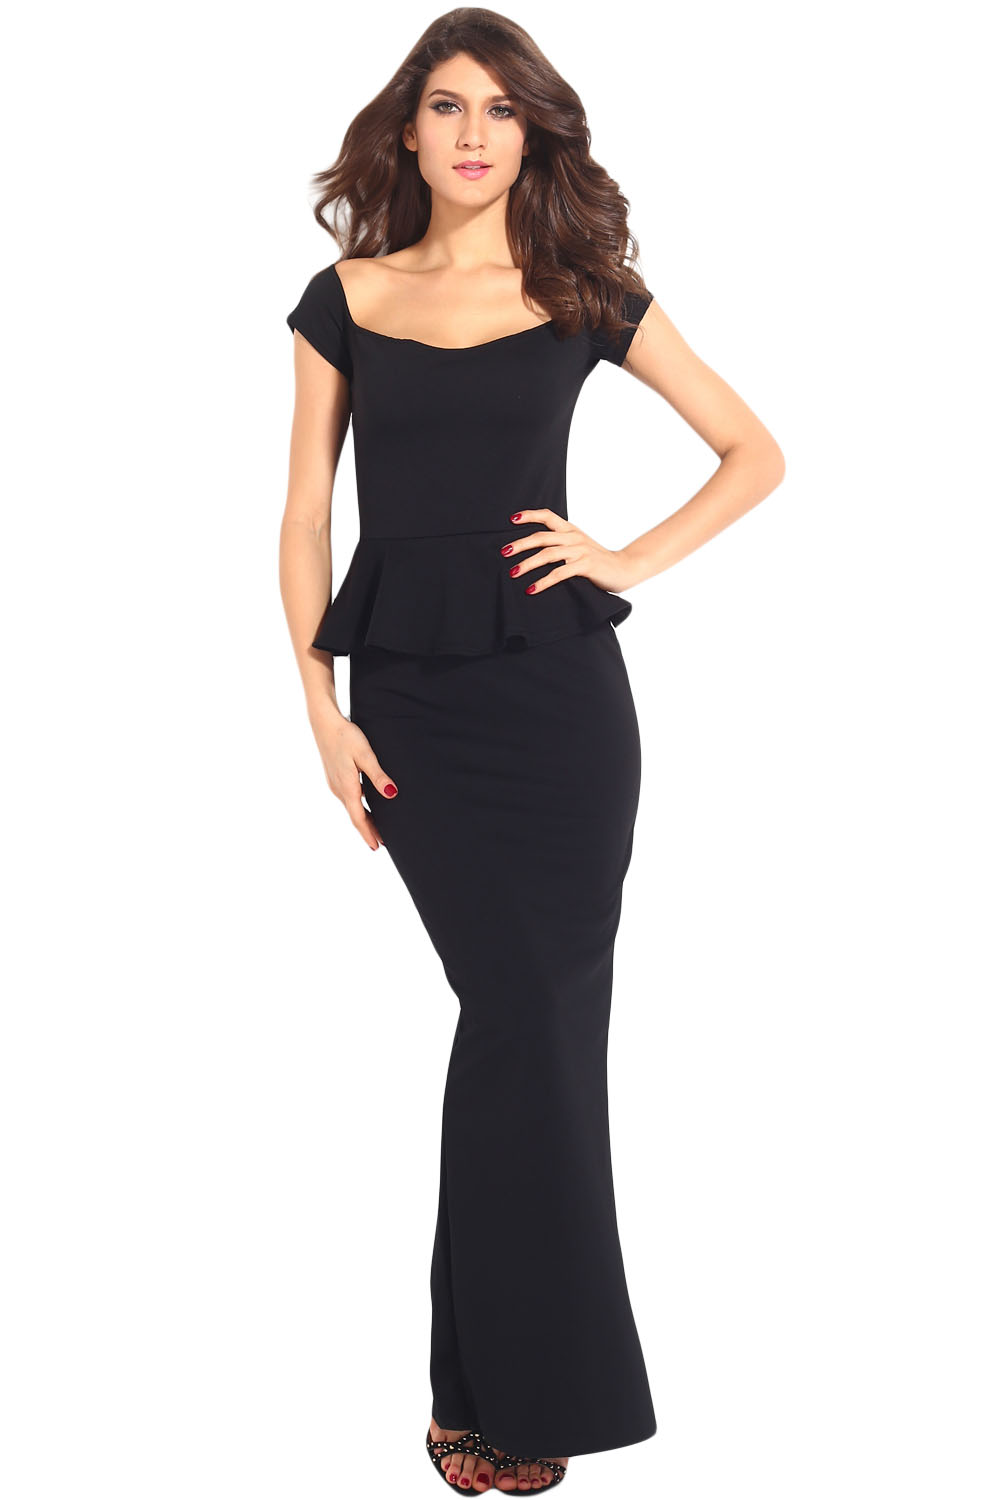 This black dress is perfect to wear to work or semi formal events. It has short sleeves, a comfortable t-shirt neckline, and a flared waistline. The skirt reaches to the knee.